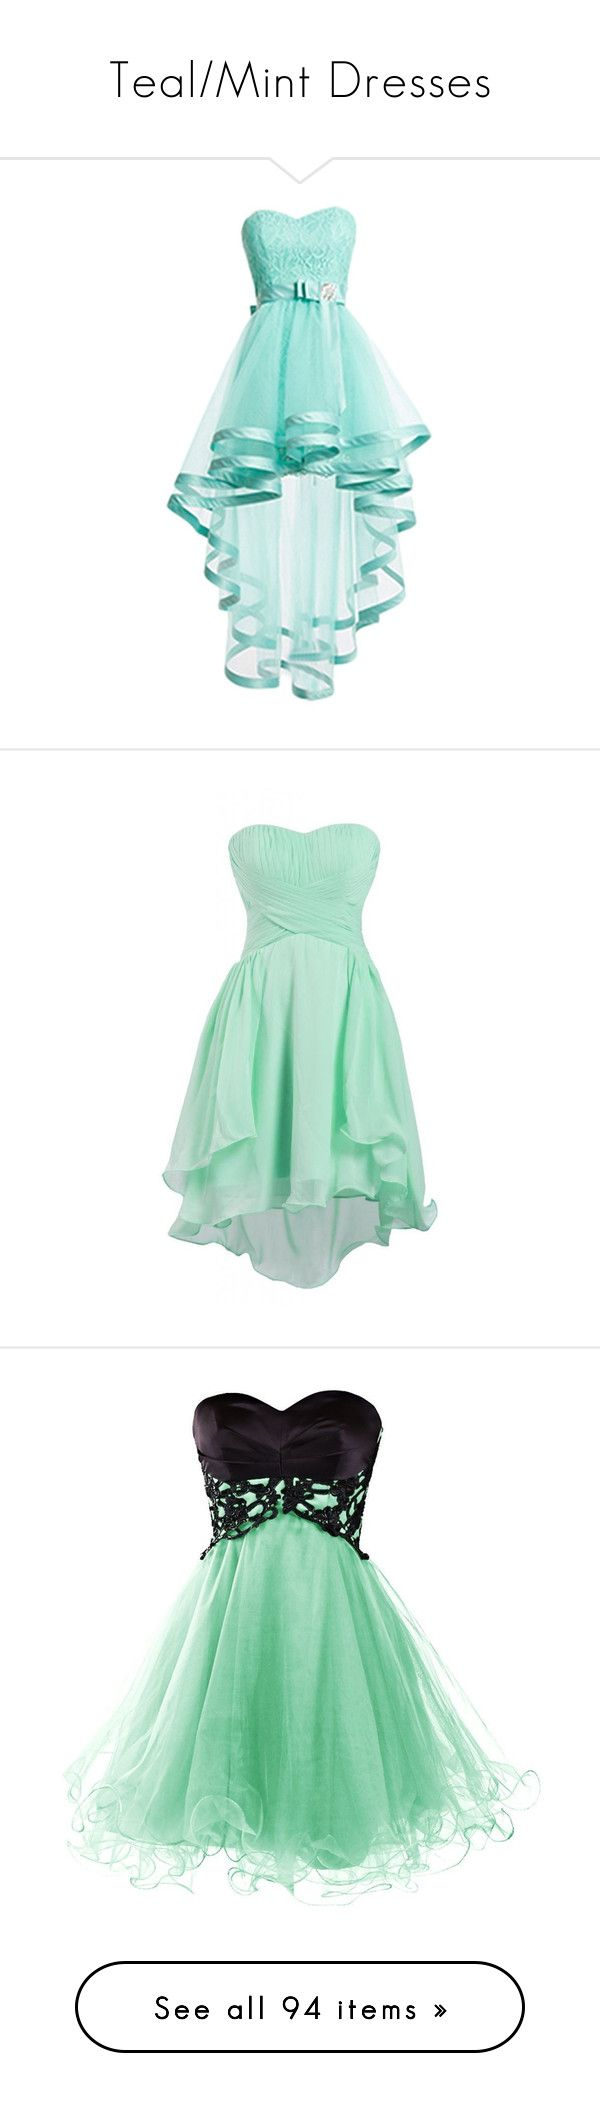 """Teal/Mint Dresses"" by megsjessd99 ❤ liked on Polyvore featuring dresses, short dresses, blue, robes, short lace dress, lace dress, short homecoming dresses, short prom dresses, lace cocktail dress and short chiffon dress"